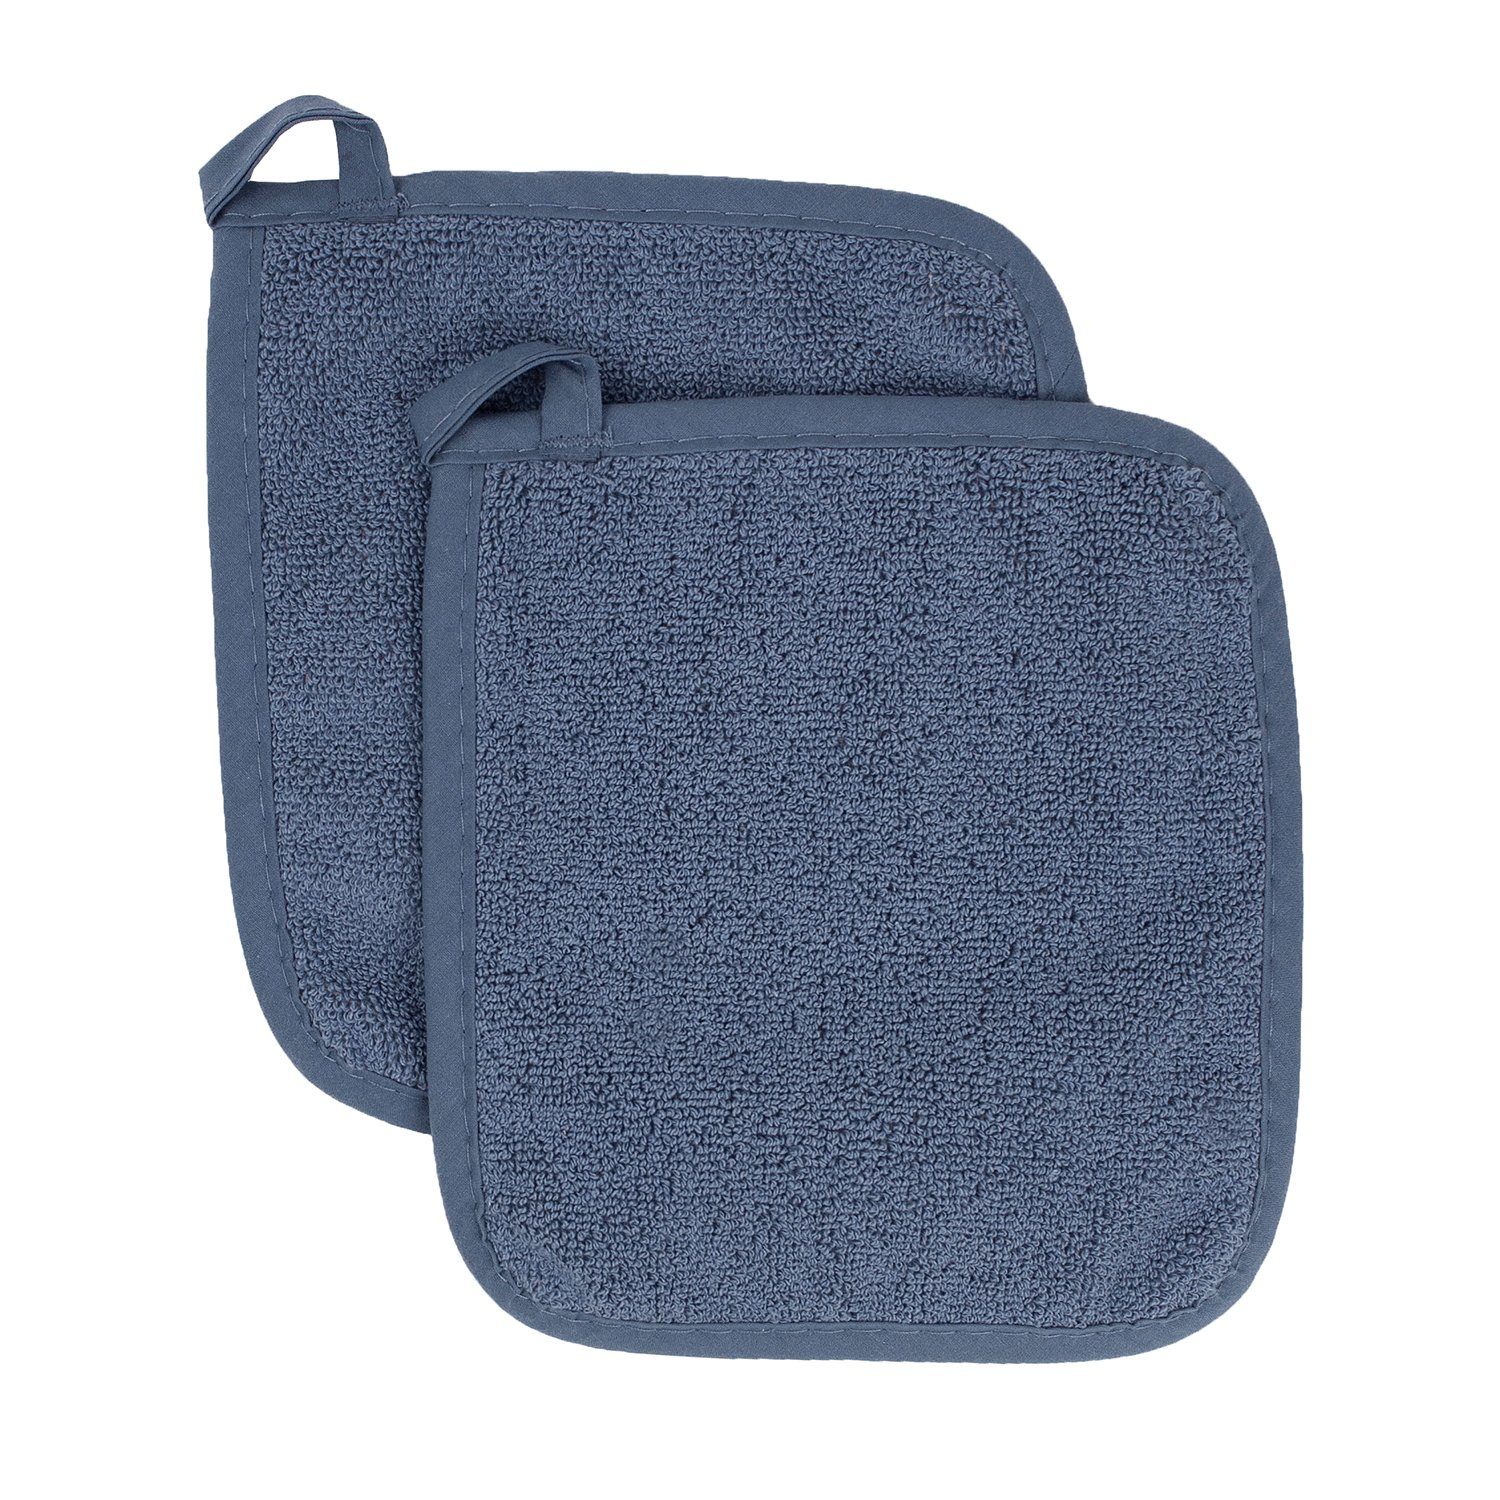 Ritz Royale Collection 100% Cotton Terry Cloth Pot Holder Set, Kitchen Hot Pad, 2-Pack, Federal Blue